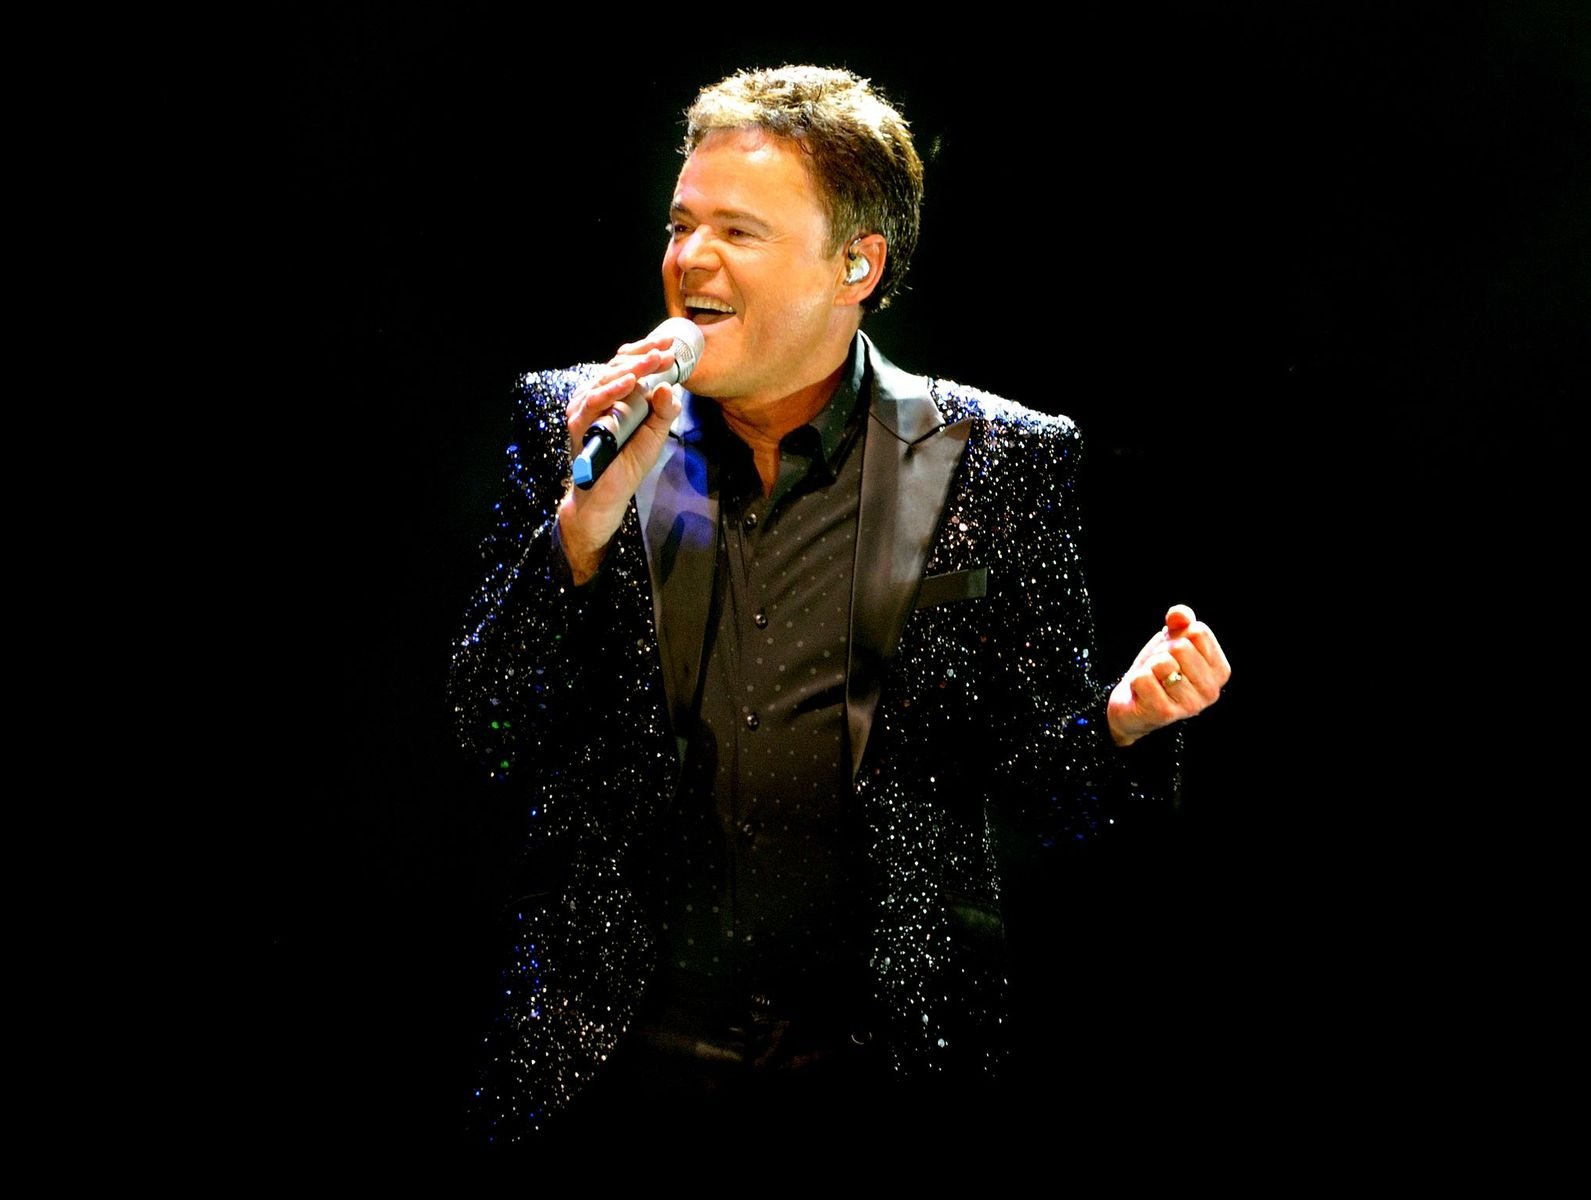 Donny Osmond on stage at Manchester Arena on January 21, 2017 | Photo: Getty Images